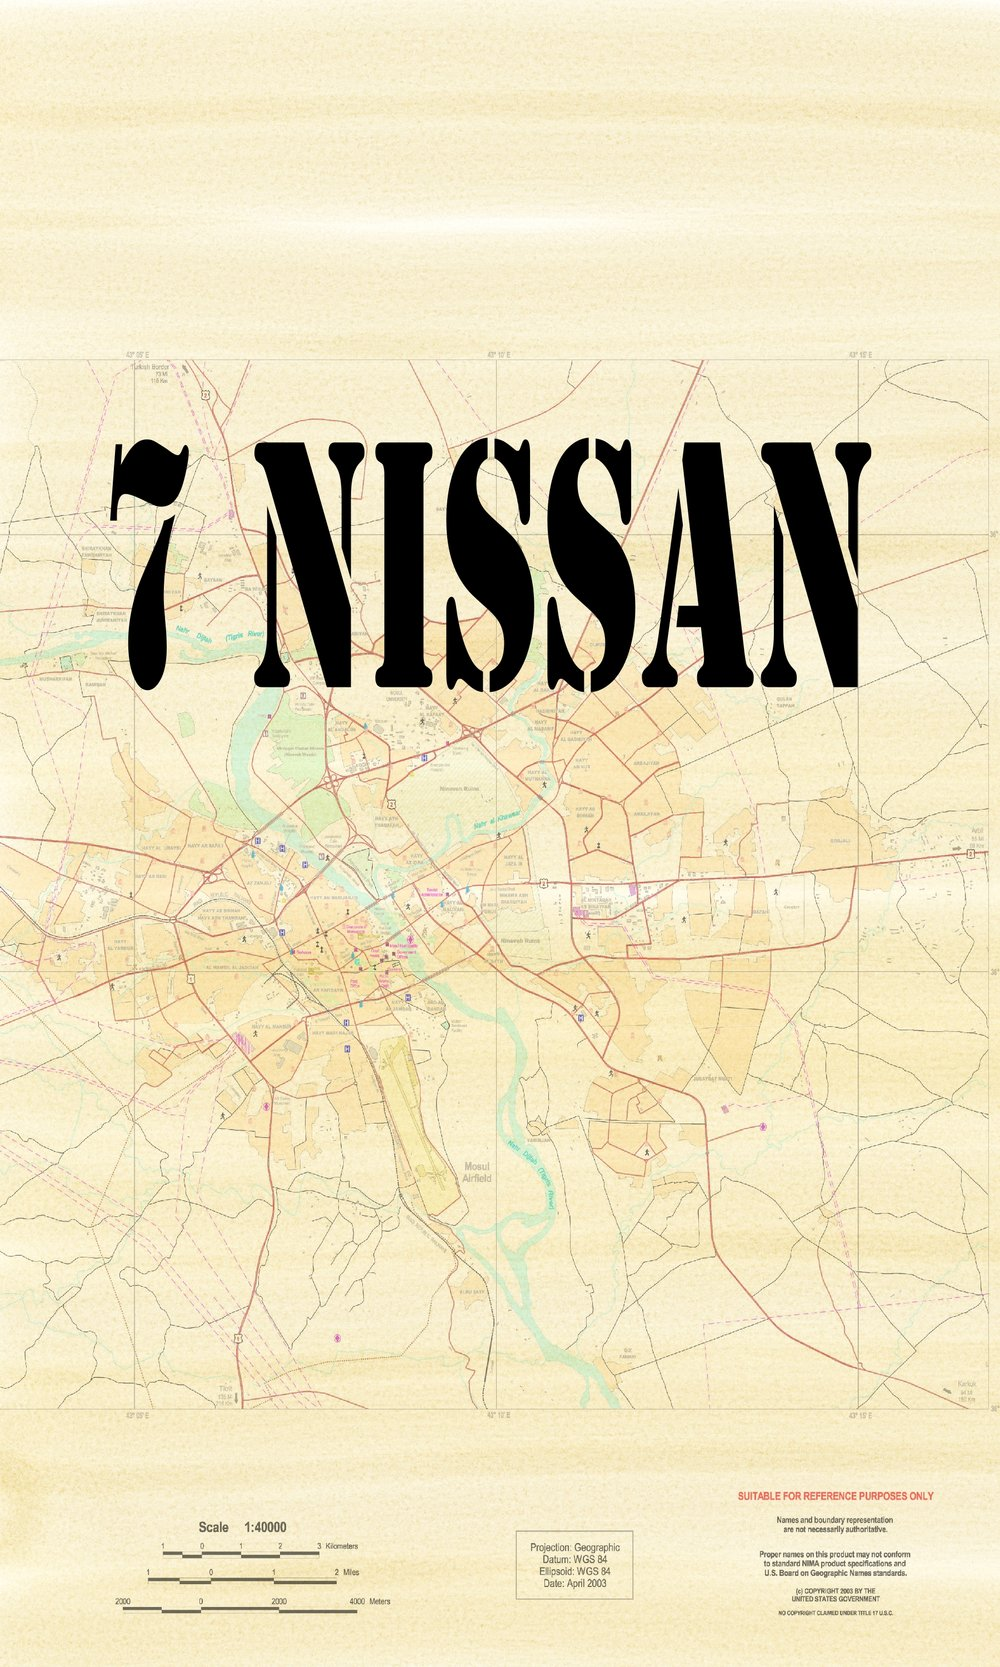 7 Nissan Title Page.jpg